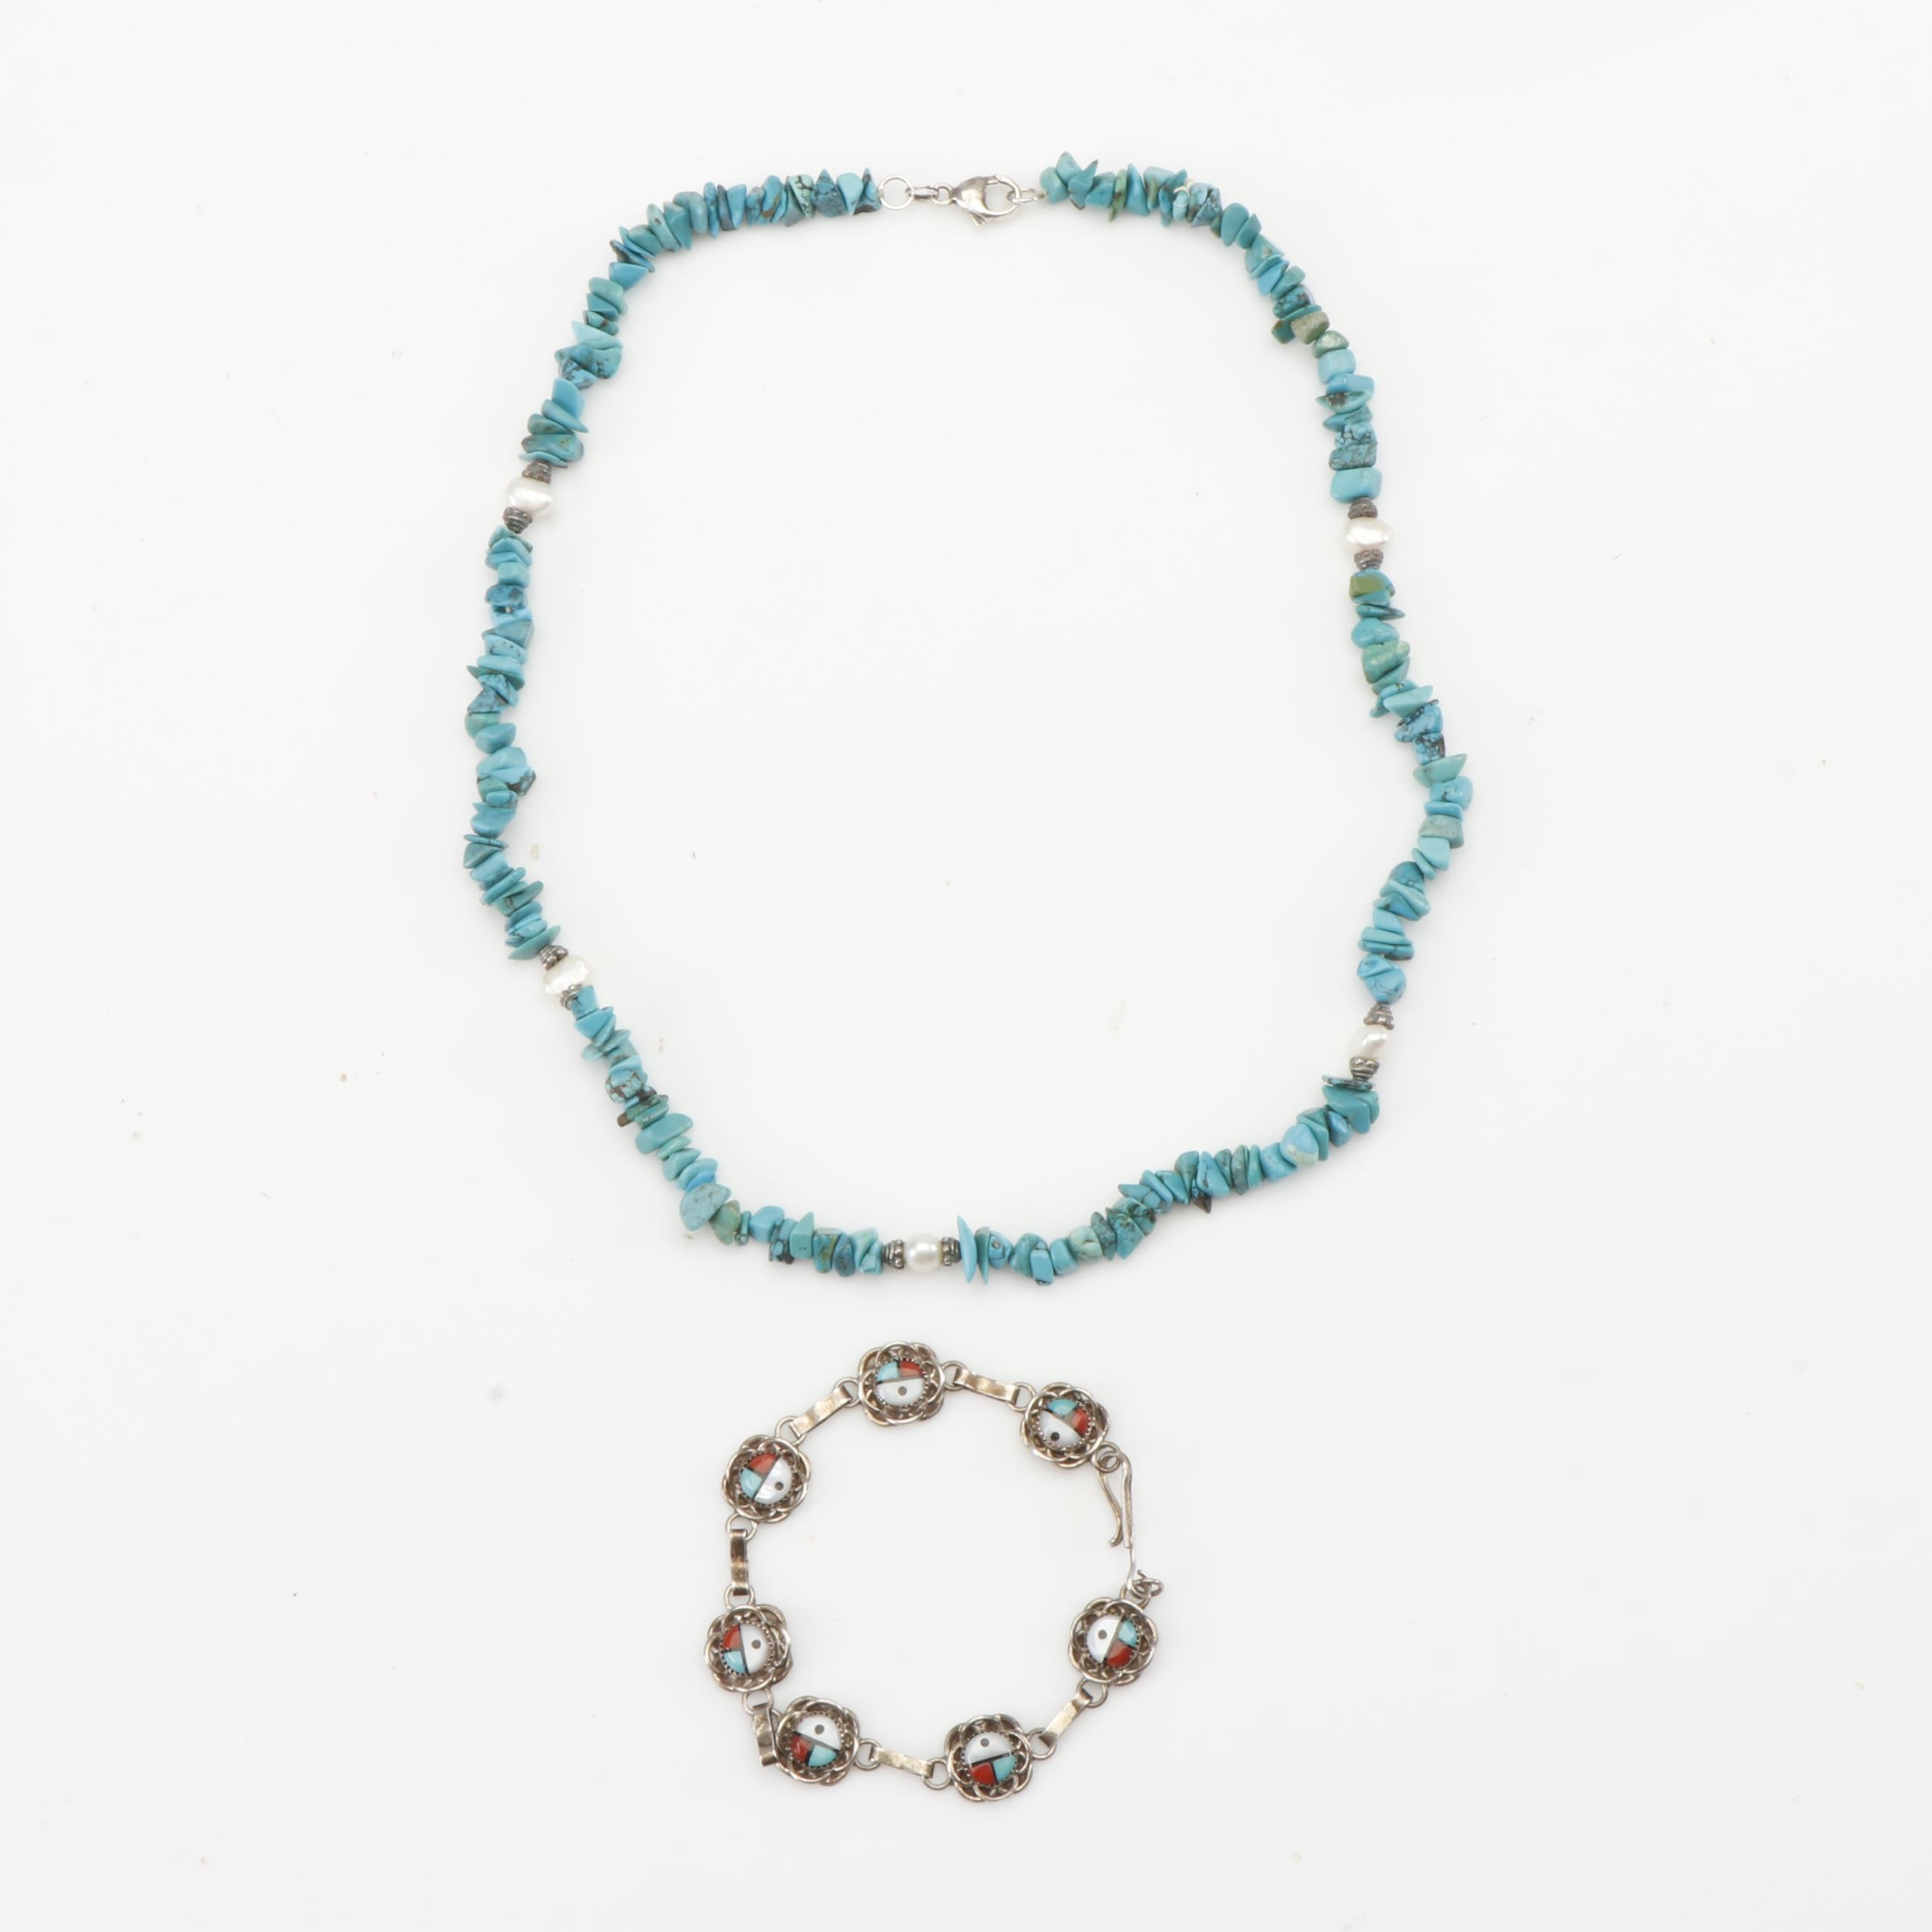 Sterling Silver Southwestern Style Jewelry with Turquoise, Cultured Pearl & More